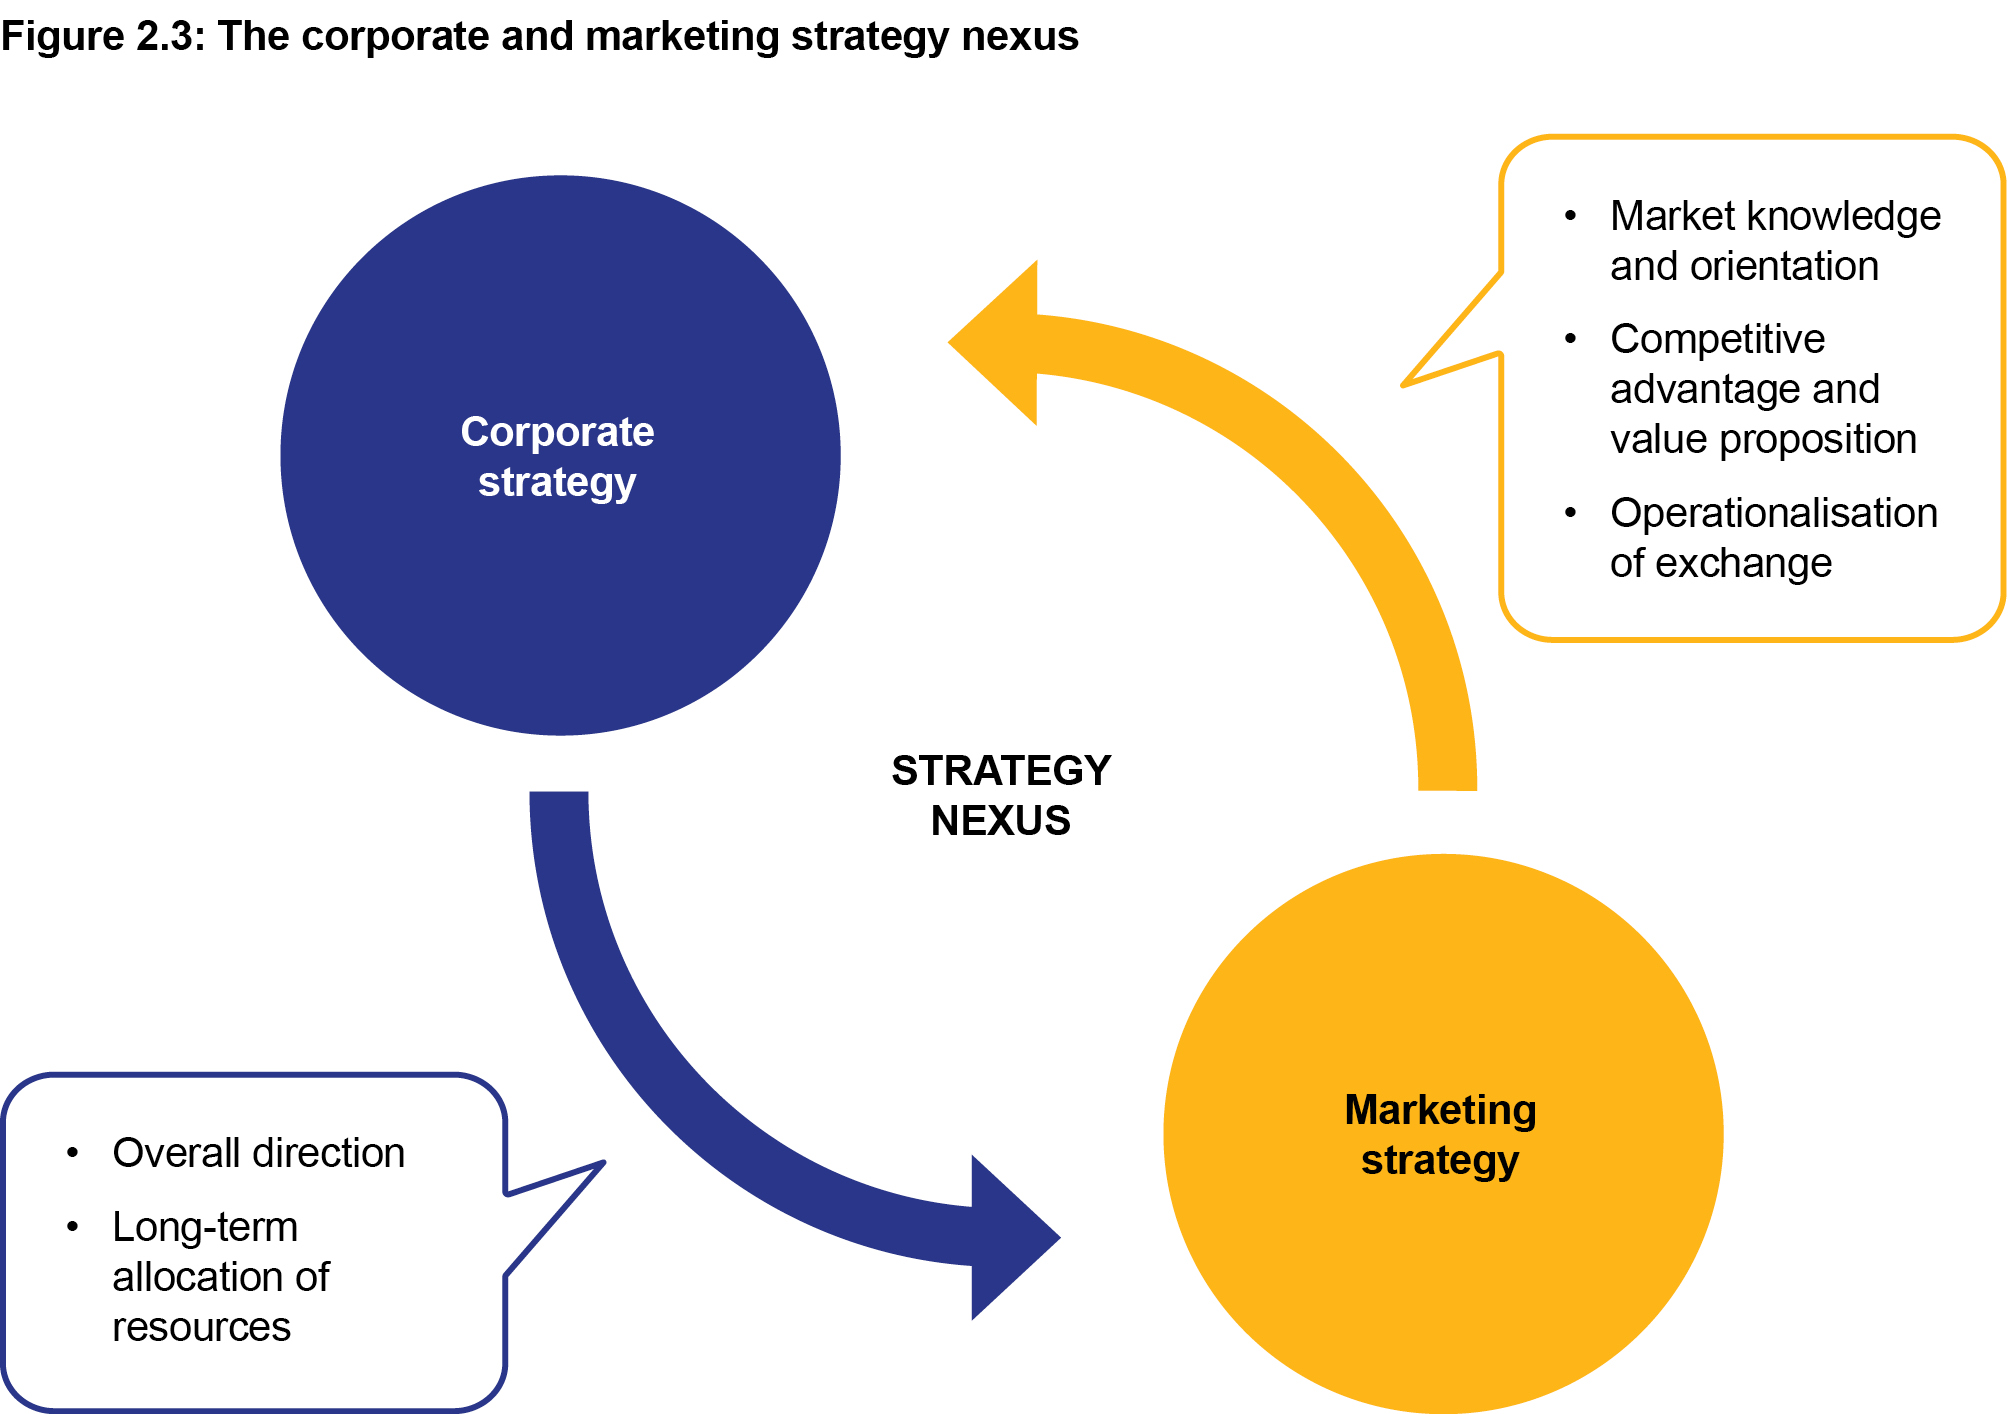 Figure 2.3: The coporate and marketing strategy nexus